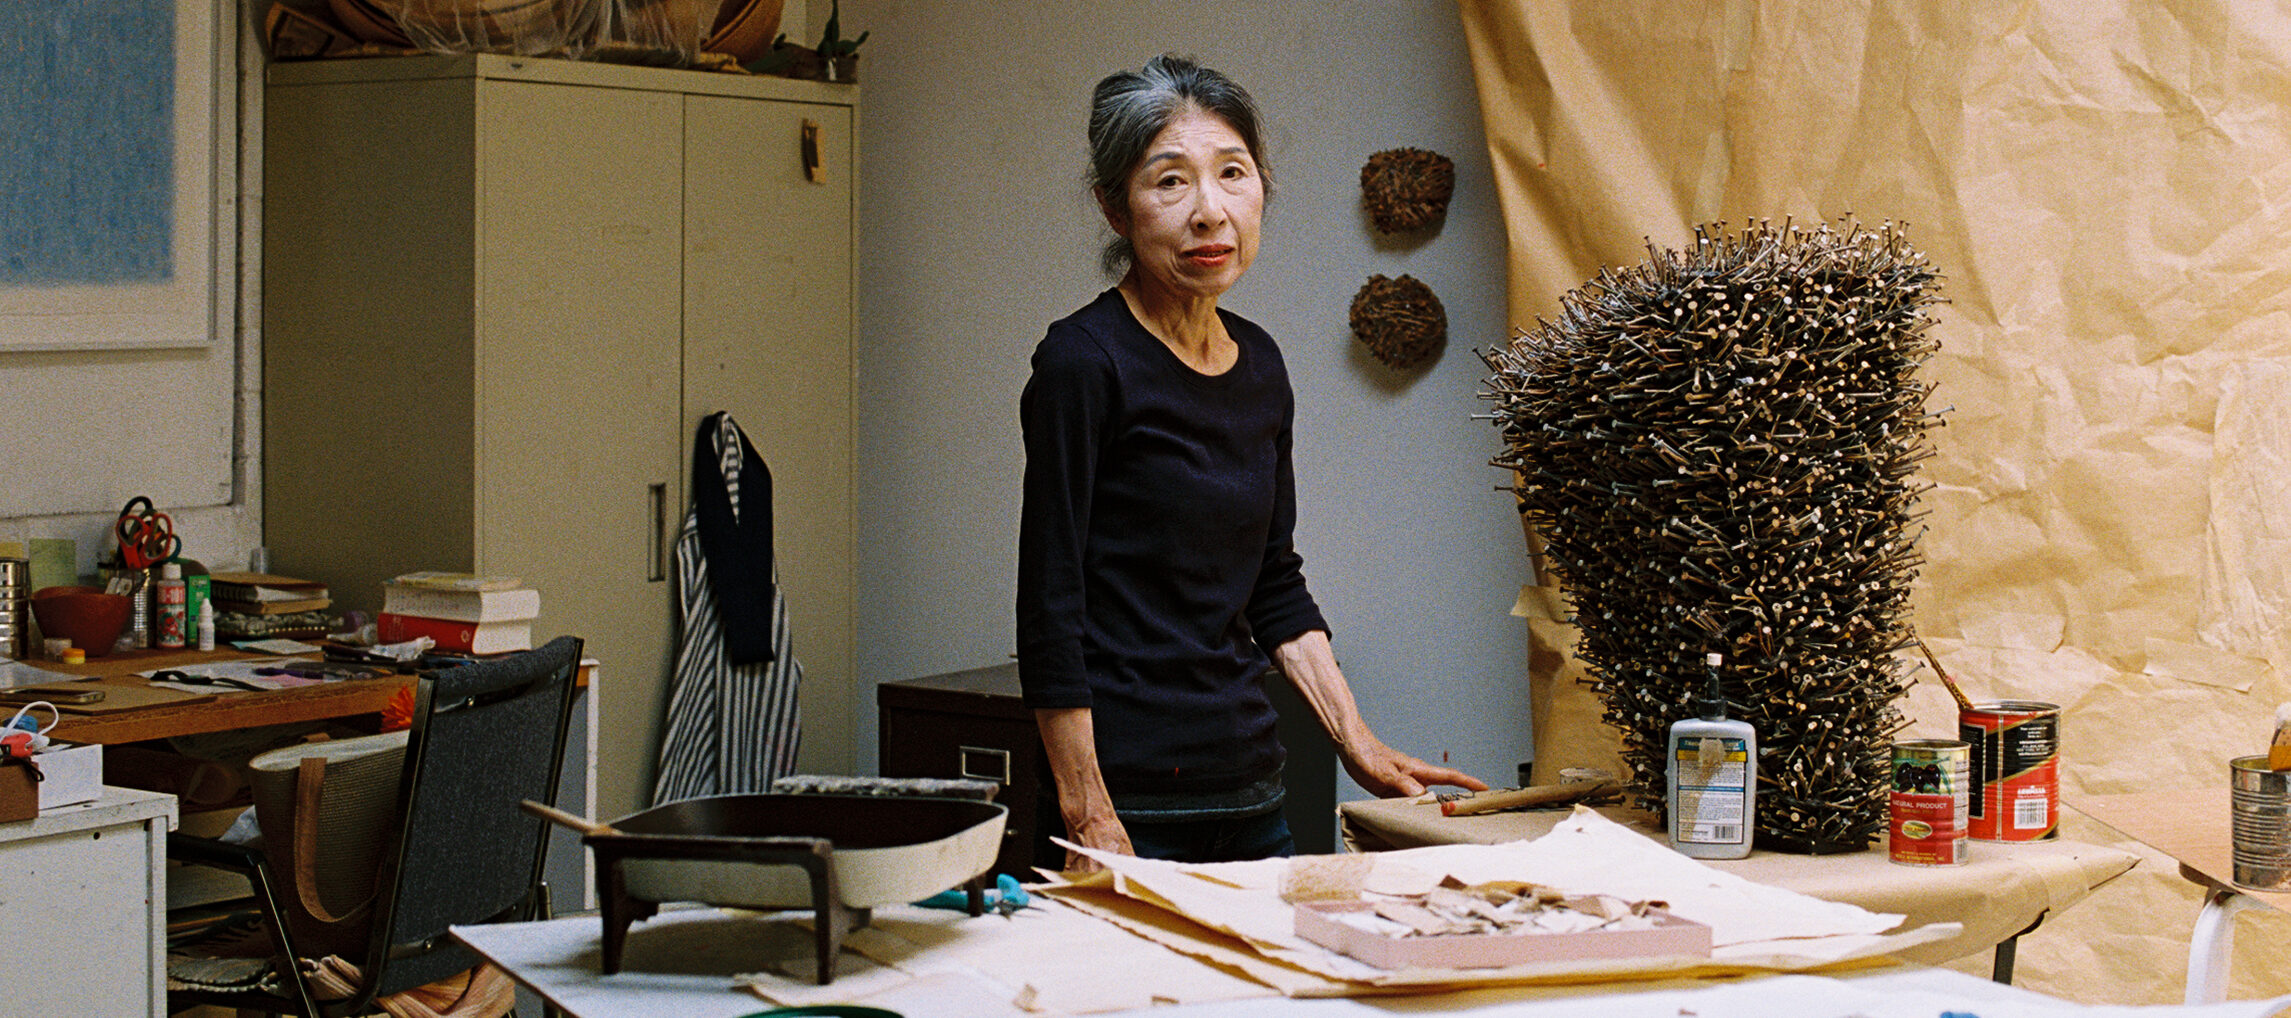 In a white brick artist's studio, a small light-skinned Japanese woman stands amongst various supplies, including work paper, paper sculptures, scissors, glue sticks, and paint cans. She wears a black shirt and stares directly at the camera, unsmiling. Her black hair is pulled back and she has streaks of white hair at her hairline's part.